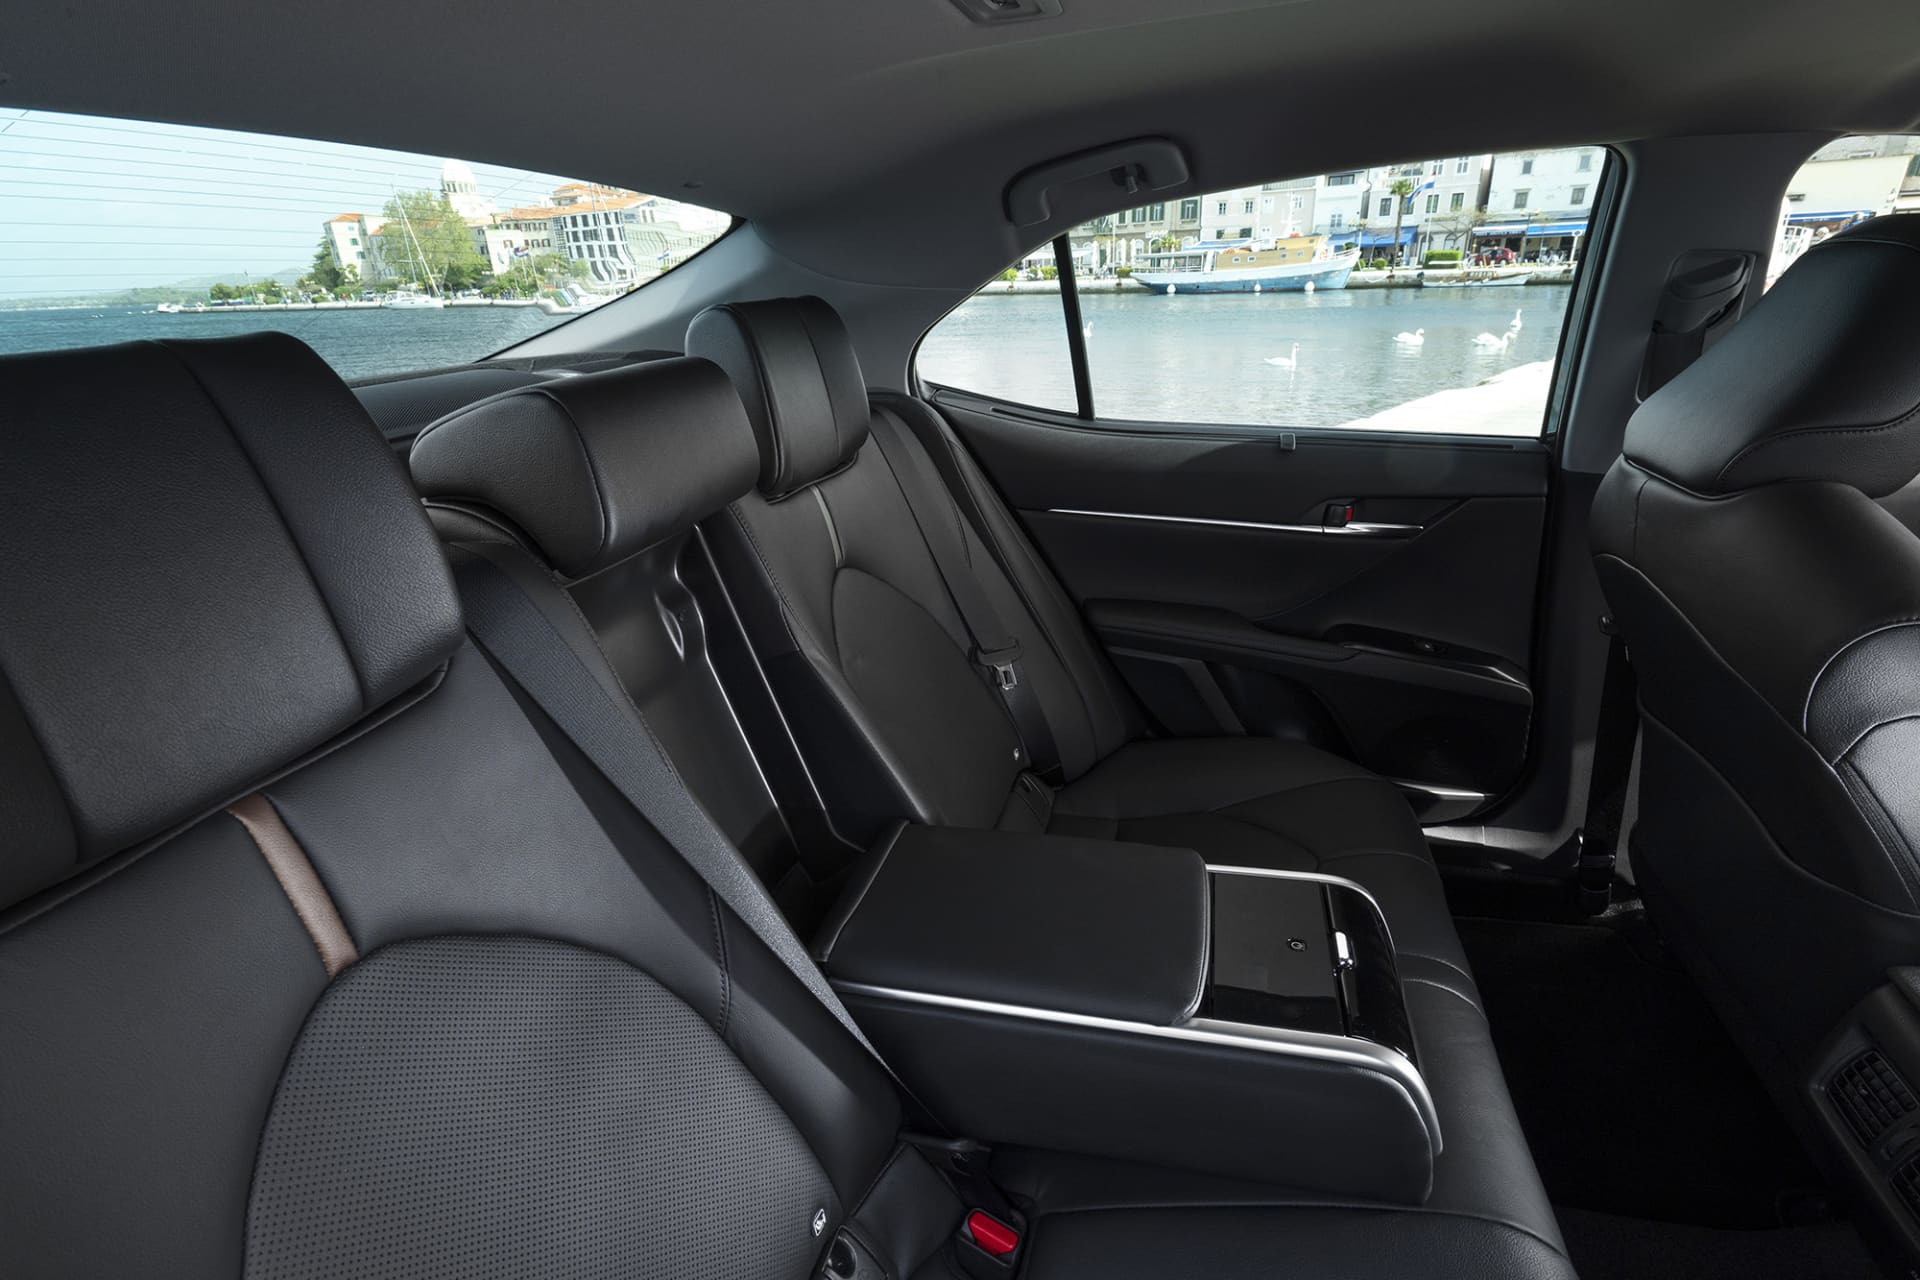 You are seated incredibly well in the back seat of the new Camry and this should be a much-appreciated model for the taxi industry.